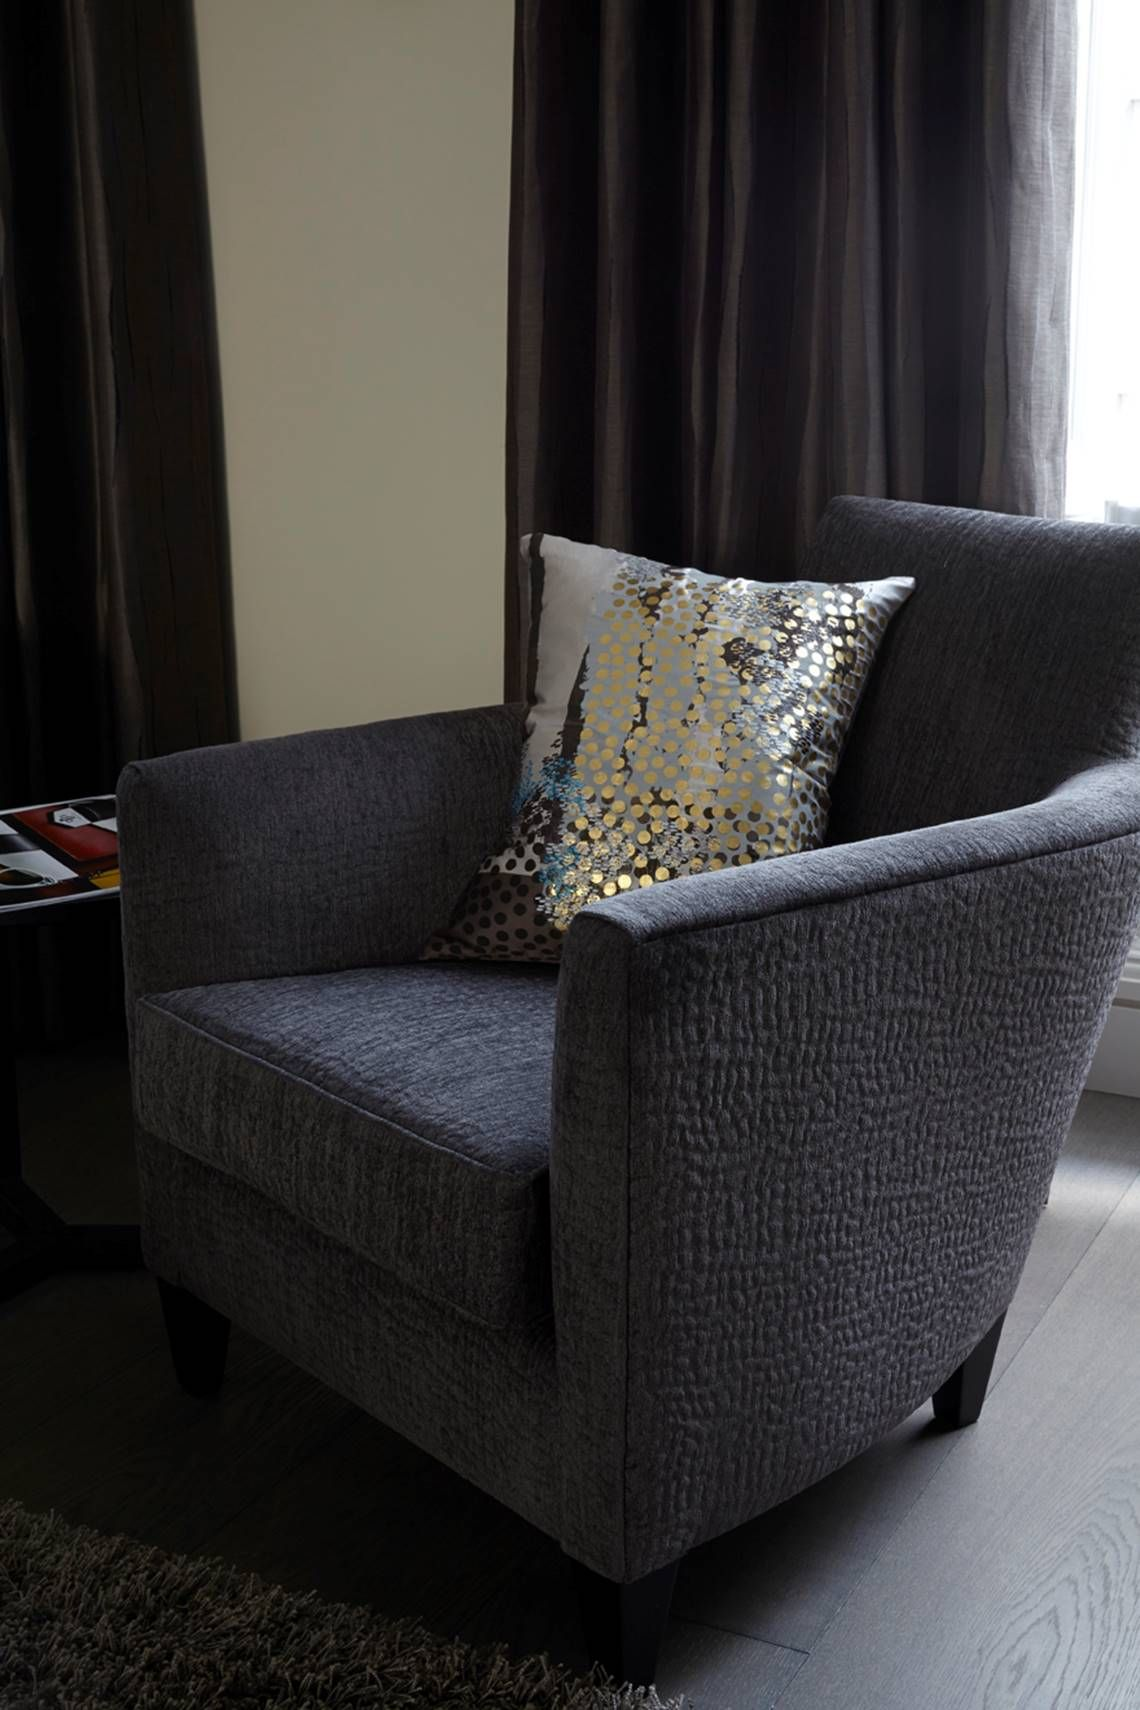 Armchair With A Single Colourful Cushion To Pick Out The Feature Colours Of The  Room.